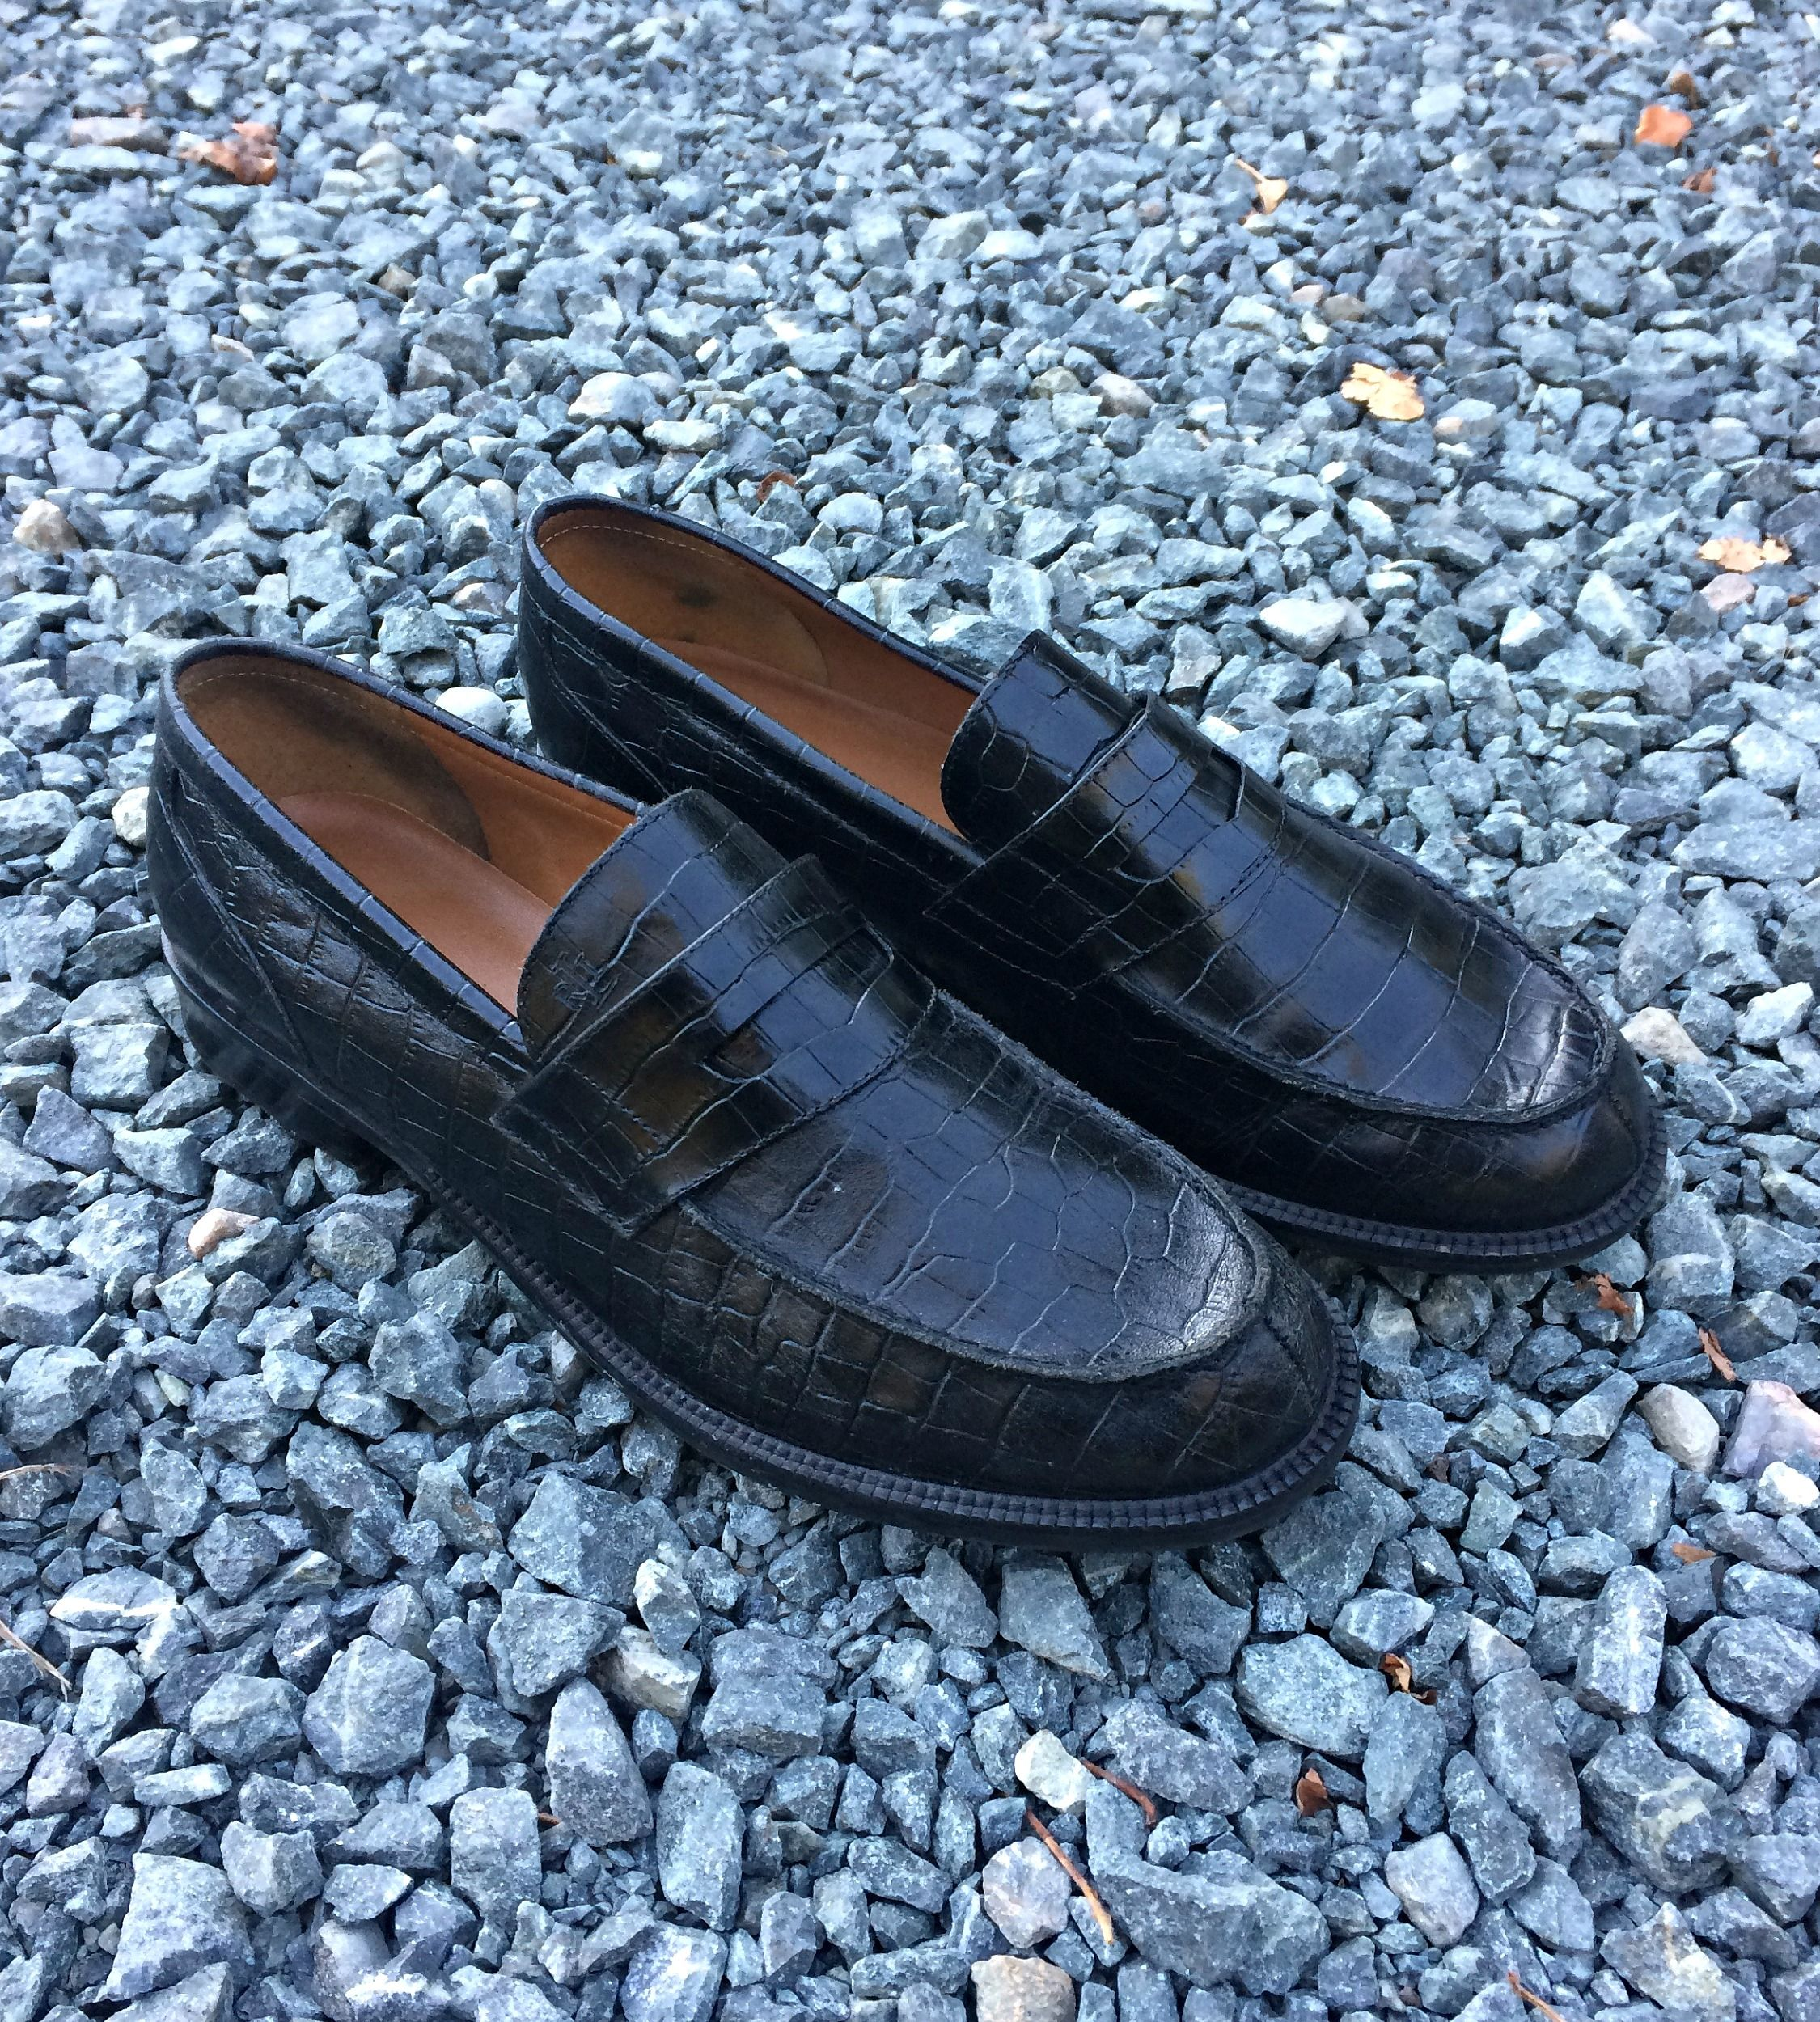 1990 S Ralph Lauren Penny Loafers Vintage Womens Black Etsy Womens Black Leather Loafers Dress Shoes Womens Black Leather Loafers [ 2500 x 2250 Pixel ]